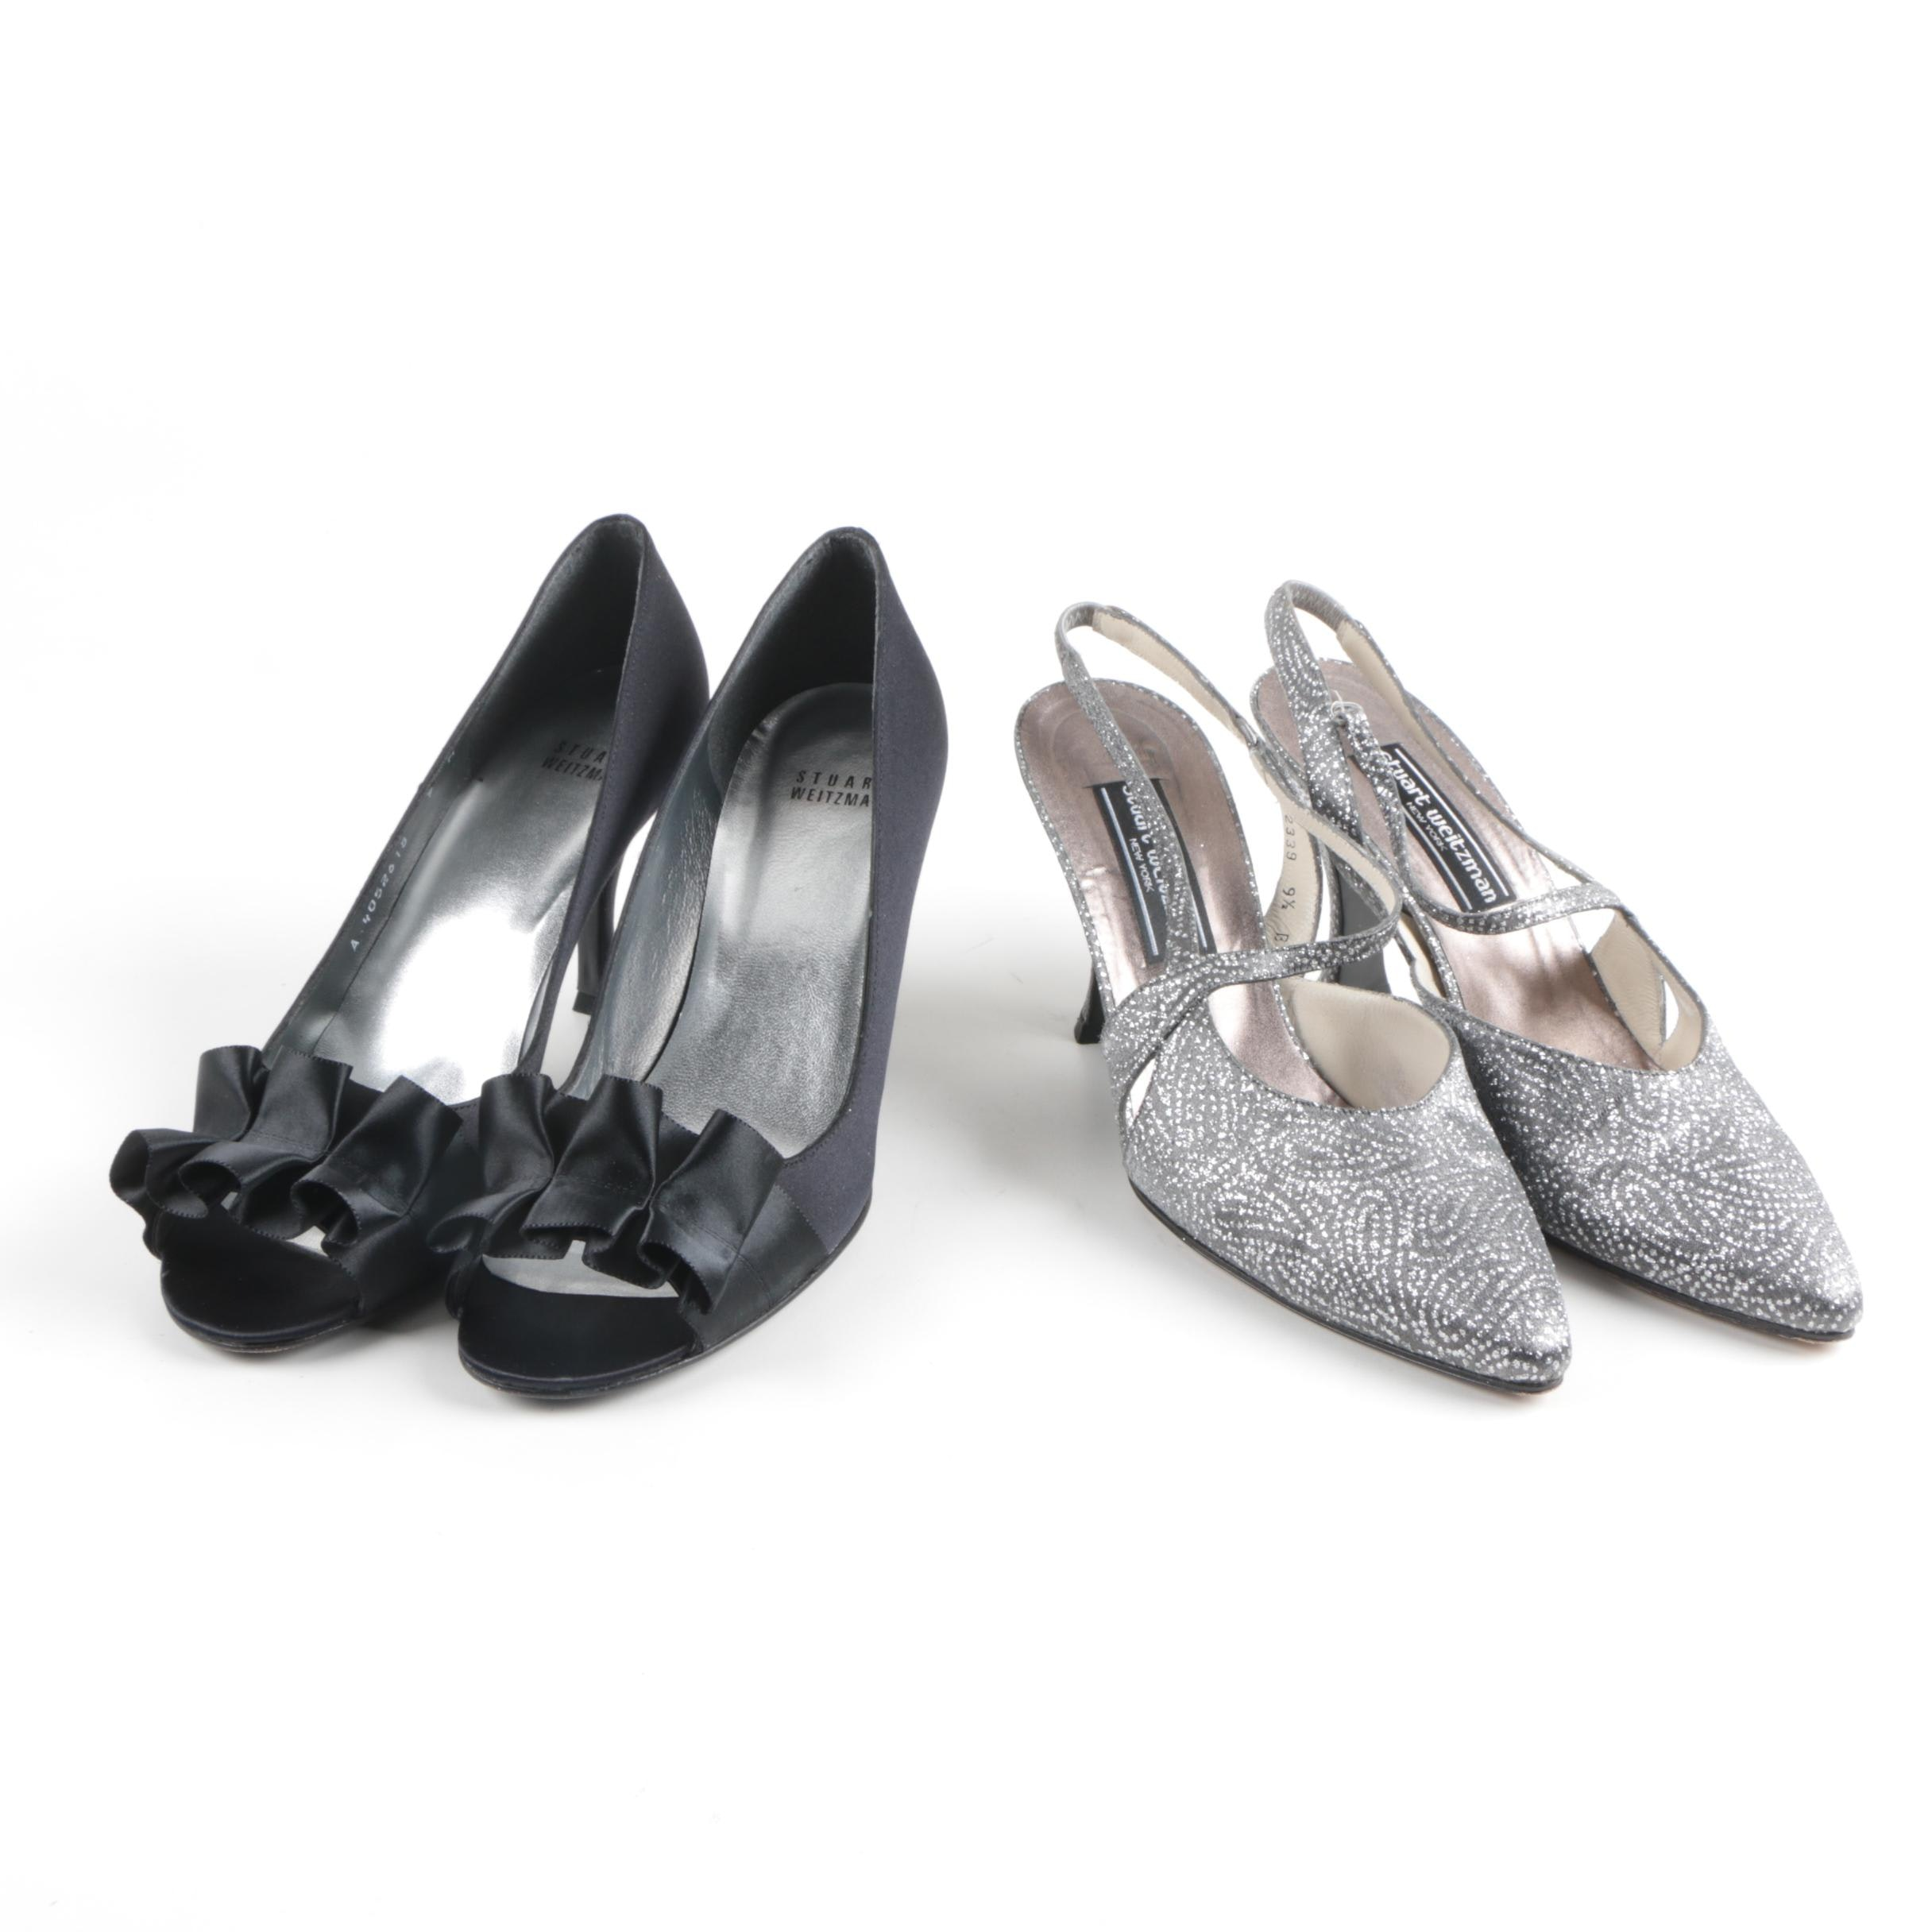 Stuart Weitzman Peep Toes and Slingbacks